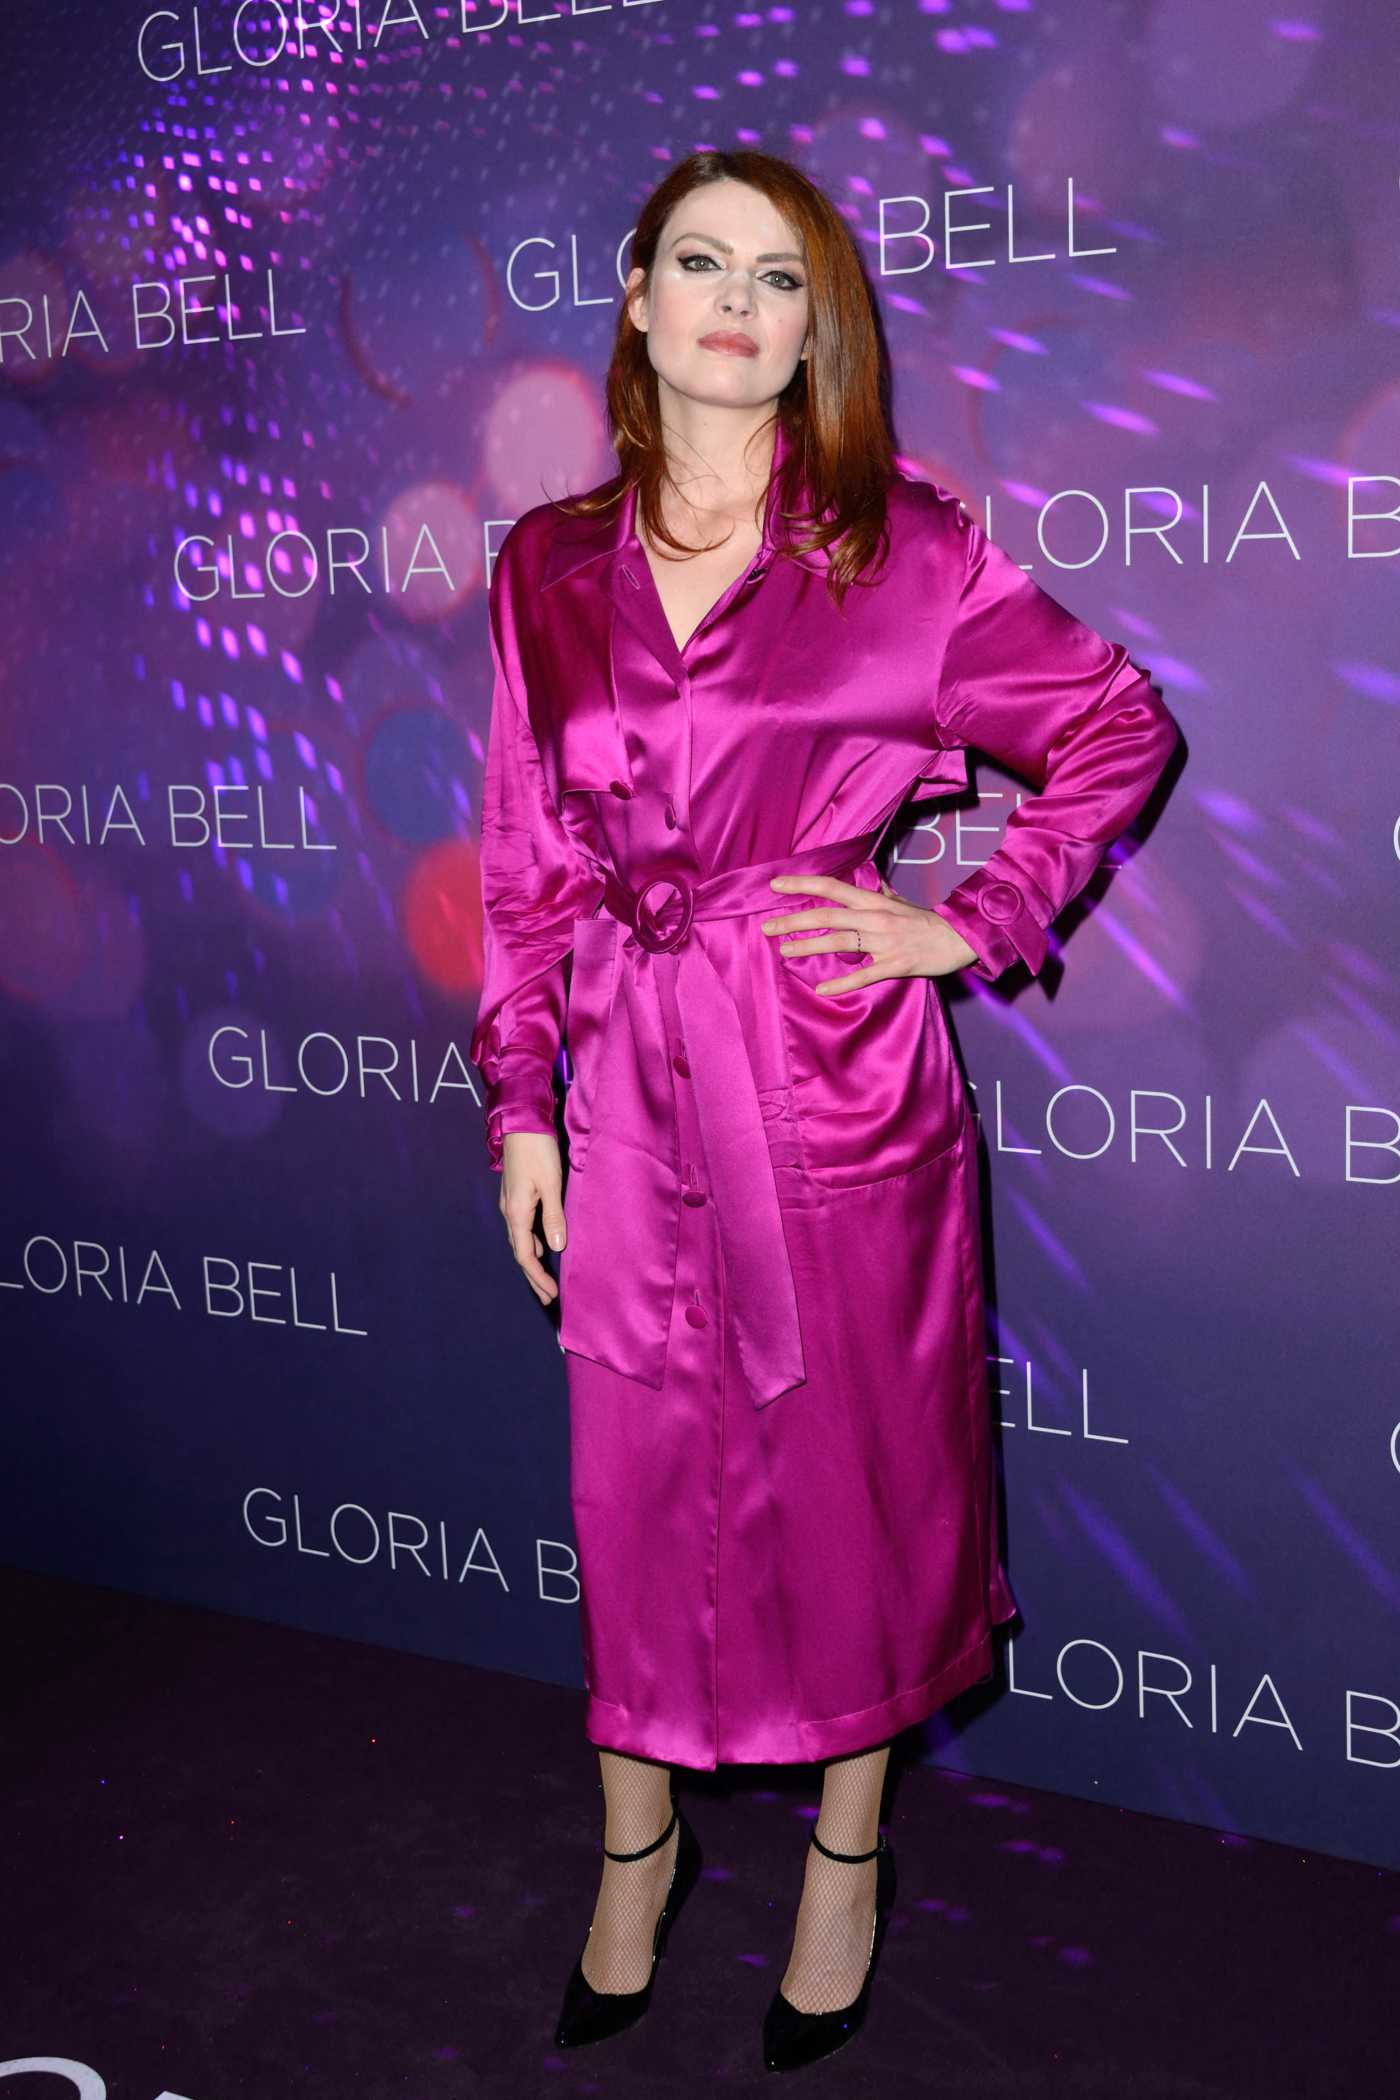 Elodie Frege Attends Gloria Bell Premiere in Paris 04/15/2019